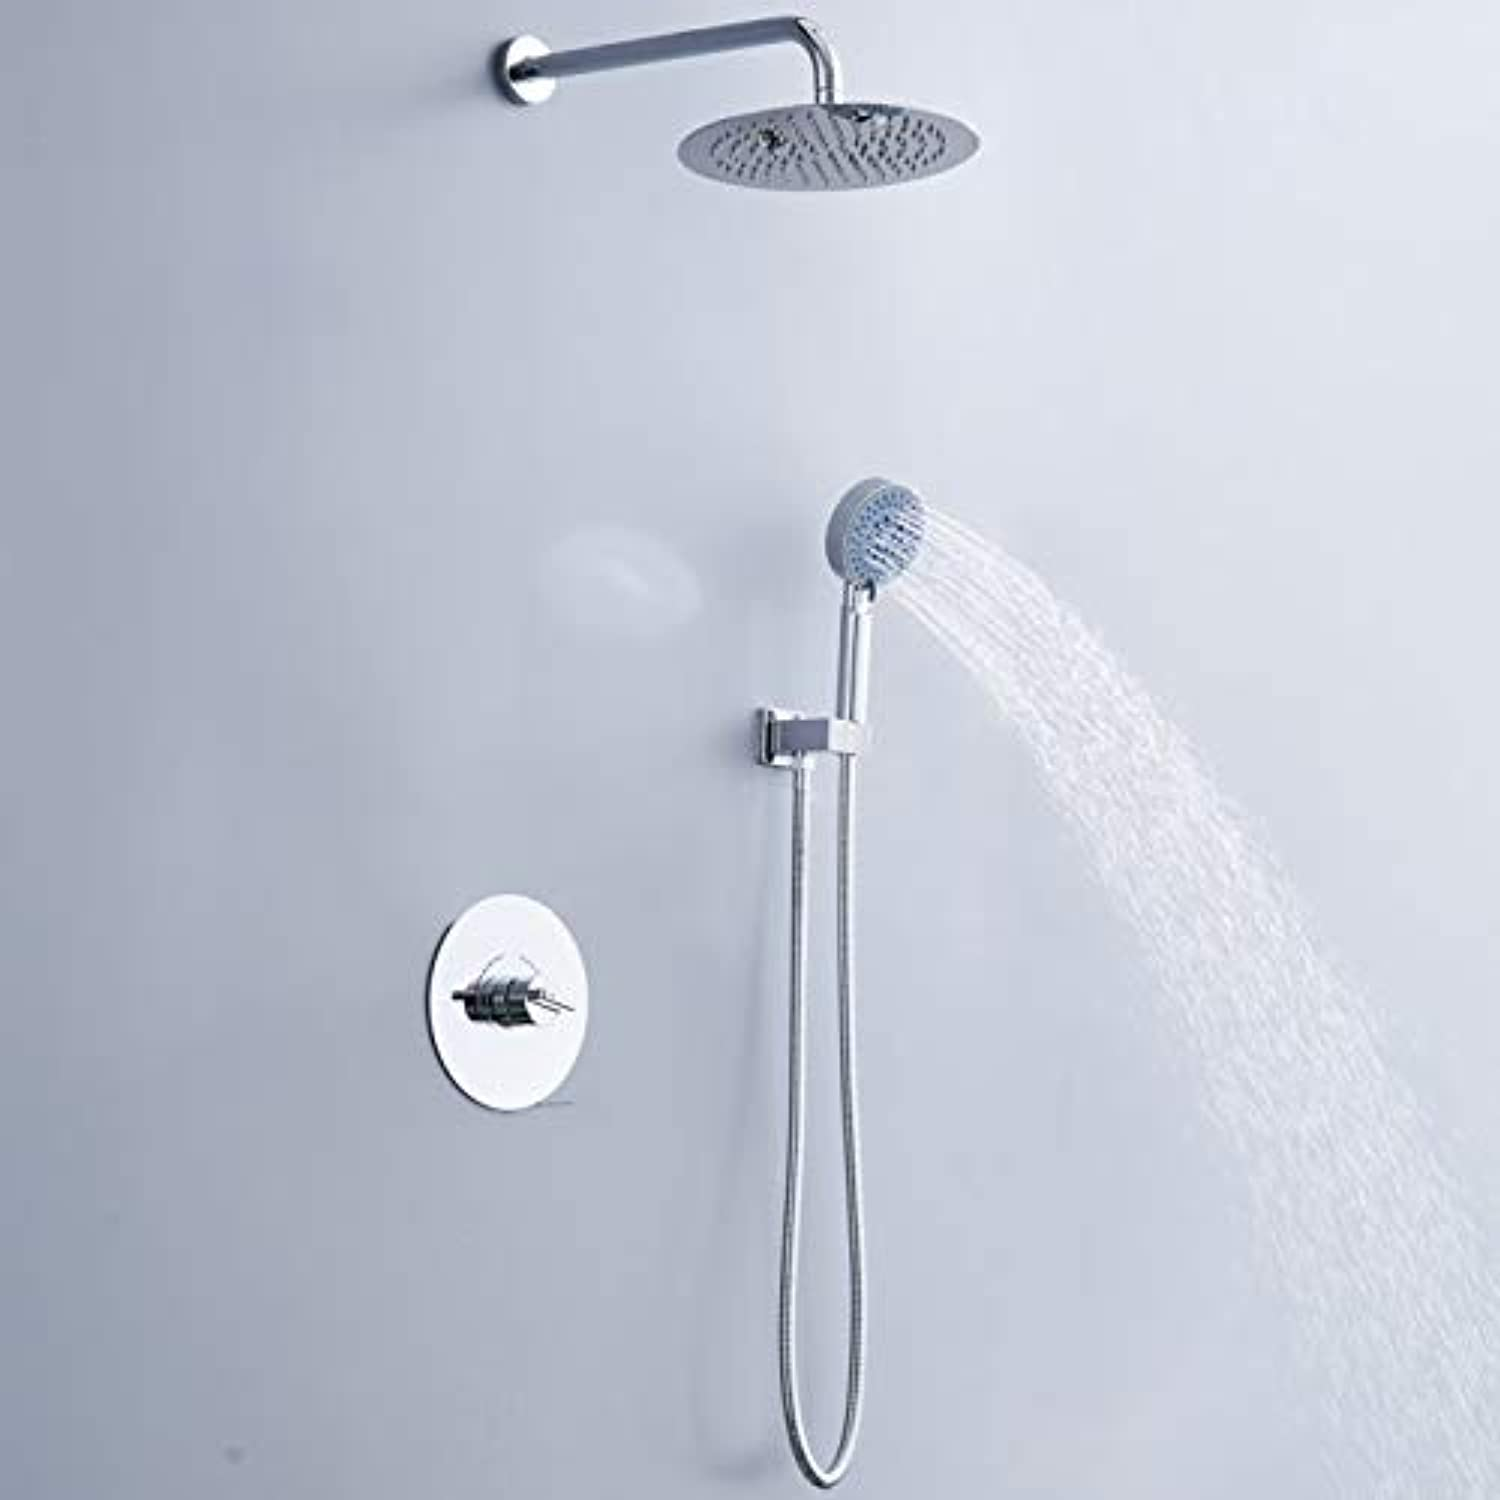 Free shipping becola concealed shower set new design chrome shower faucet kit shower wall mounted B-F1006,BF1006